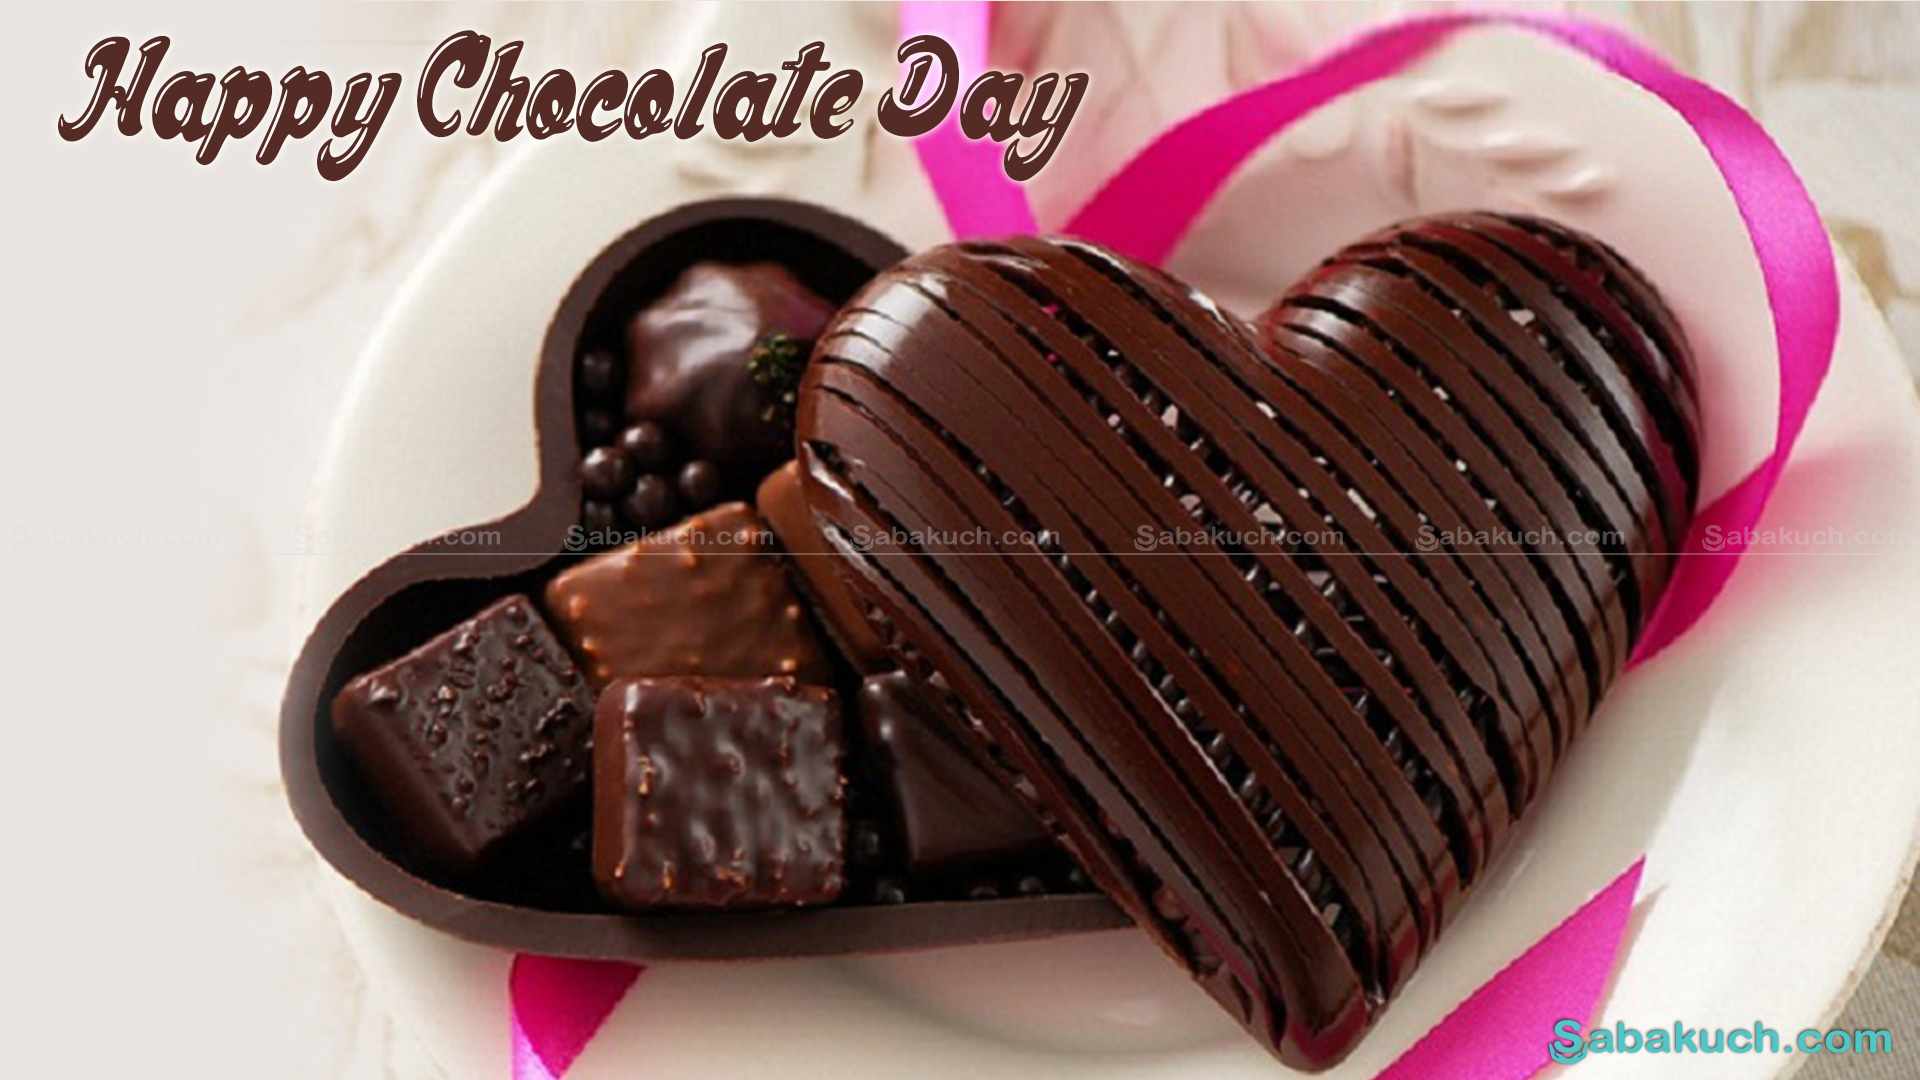 Chocolate Day feb